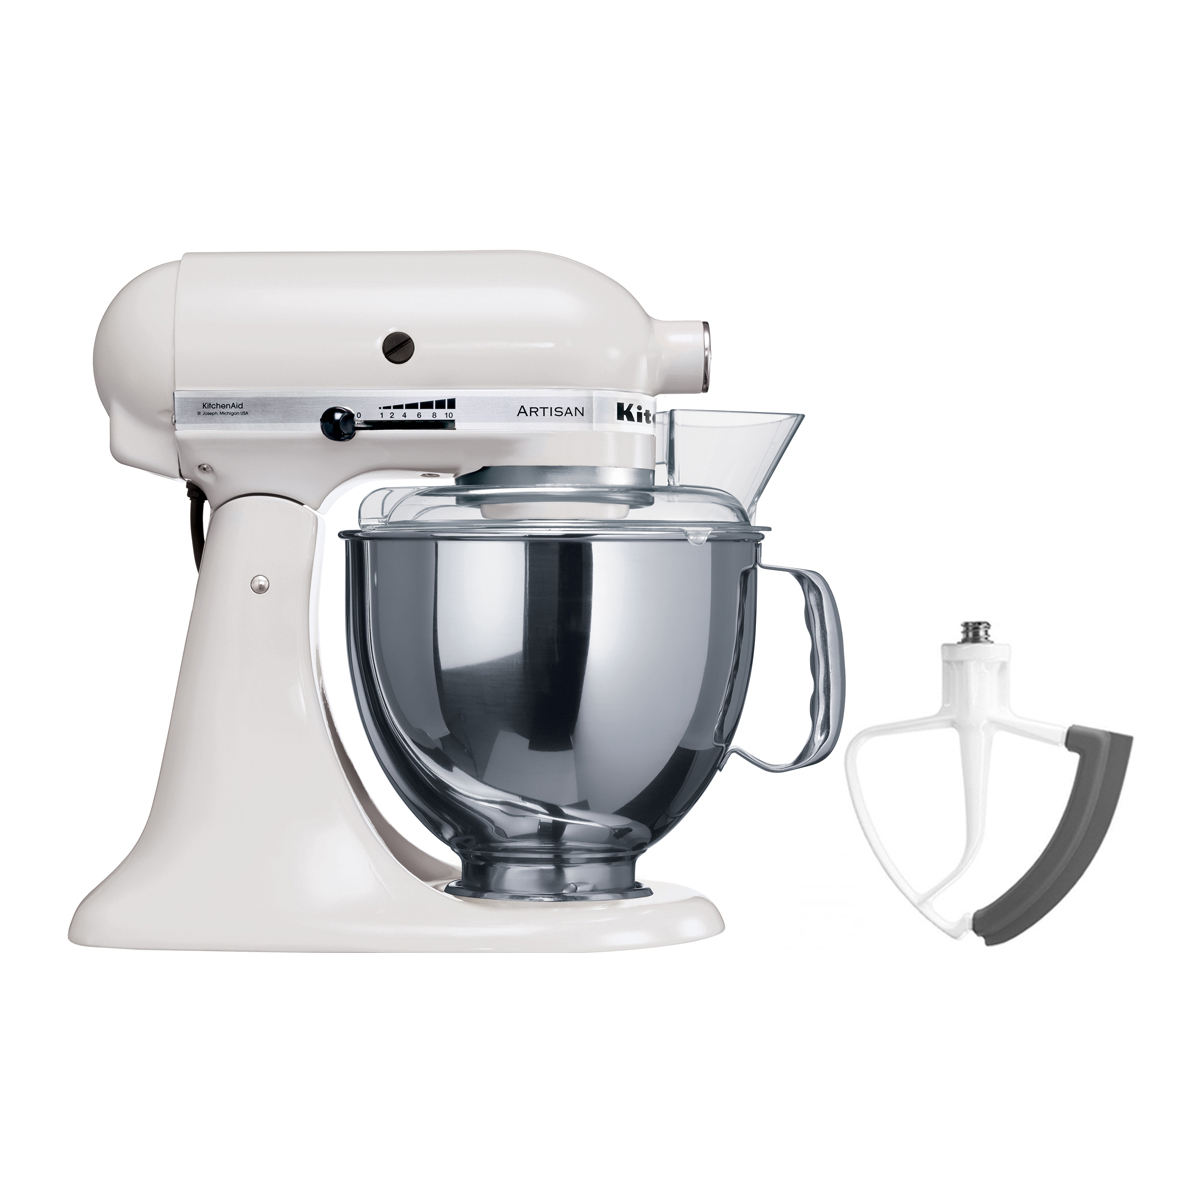 Kitchenaid 91000flexbonus ksm150 artisan stand mixer with flex edge beater home clearance Kitchenaid artisan replacement parts